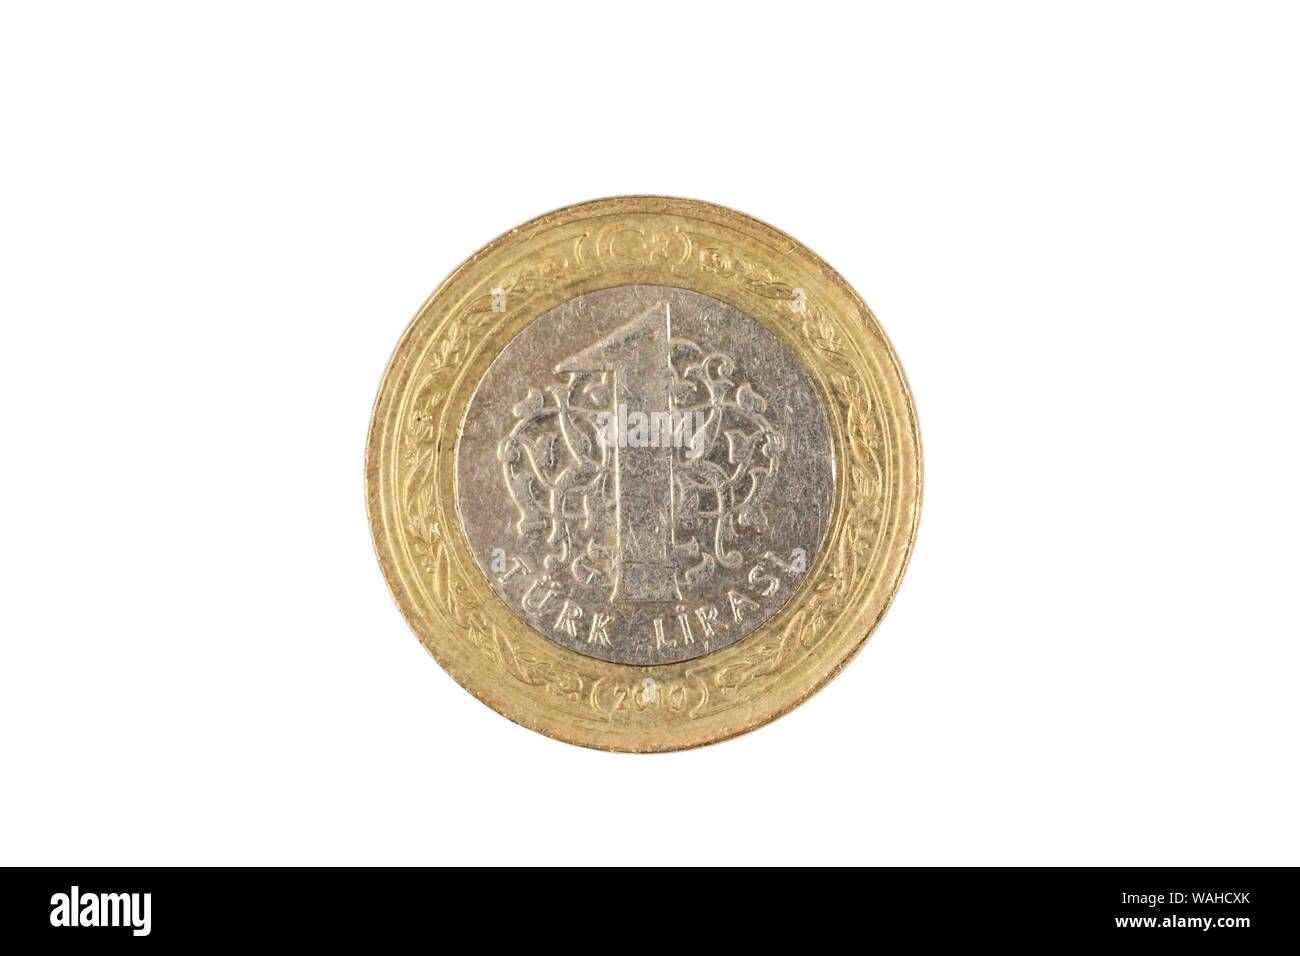 A bimettalic Turkish one lira coin isolated on a white background, shot in close up macro Stock Photo